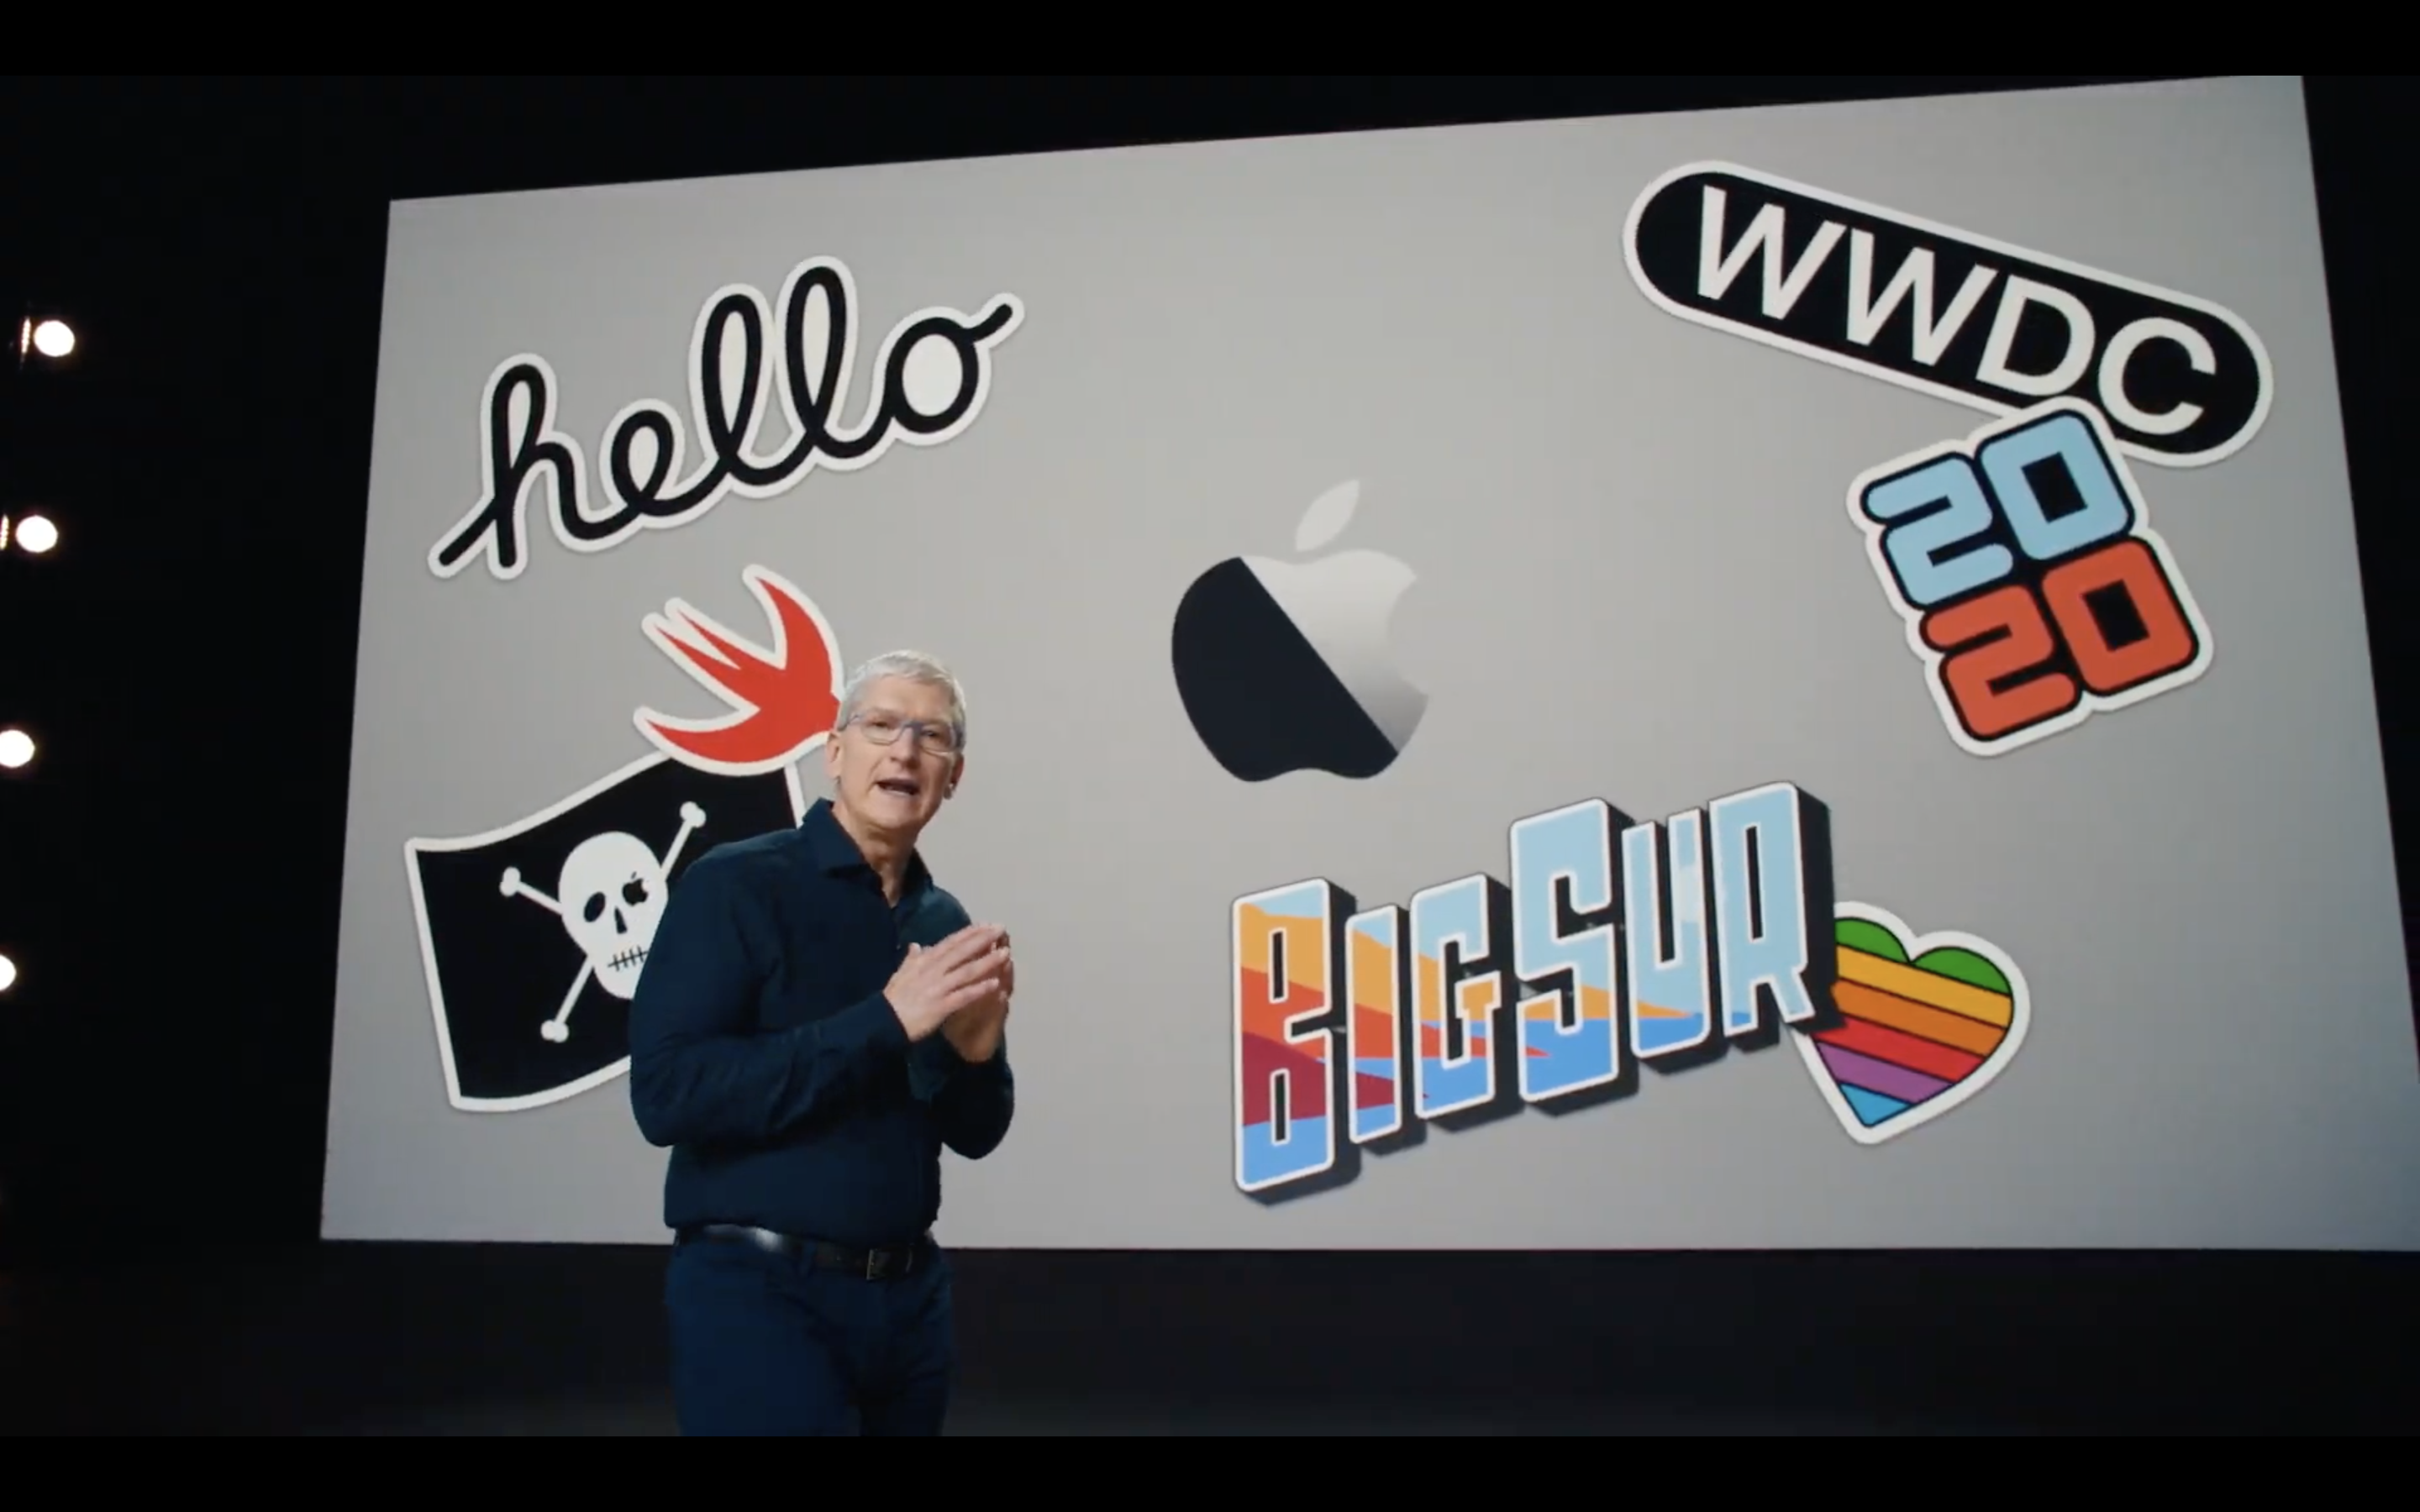 macOS Big Sur Features: Native iPhone apps and release date confirmed